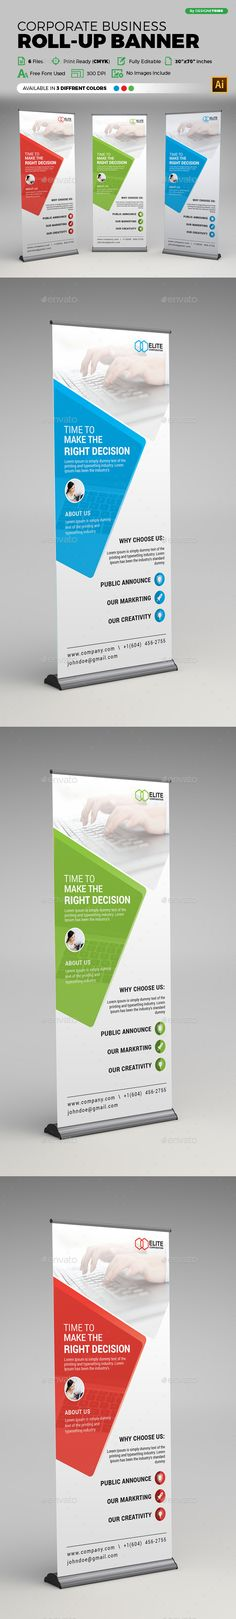 Corporate Business Roll-up Banner Template Vector EPS, AI Illustrator. Download here: https://graphicriver.net/item/corporate-business-rollup-banner/19217196?ref=ksioks